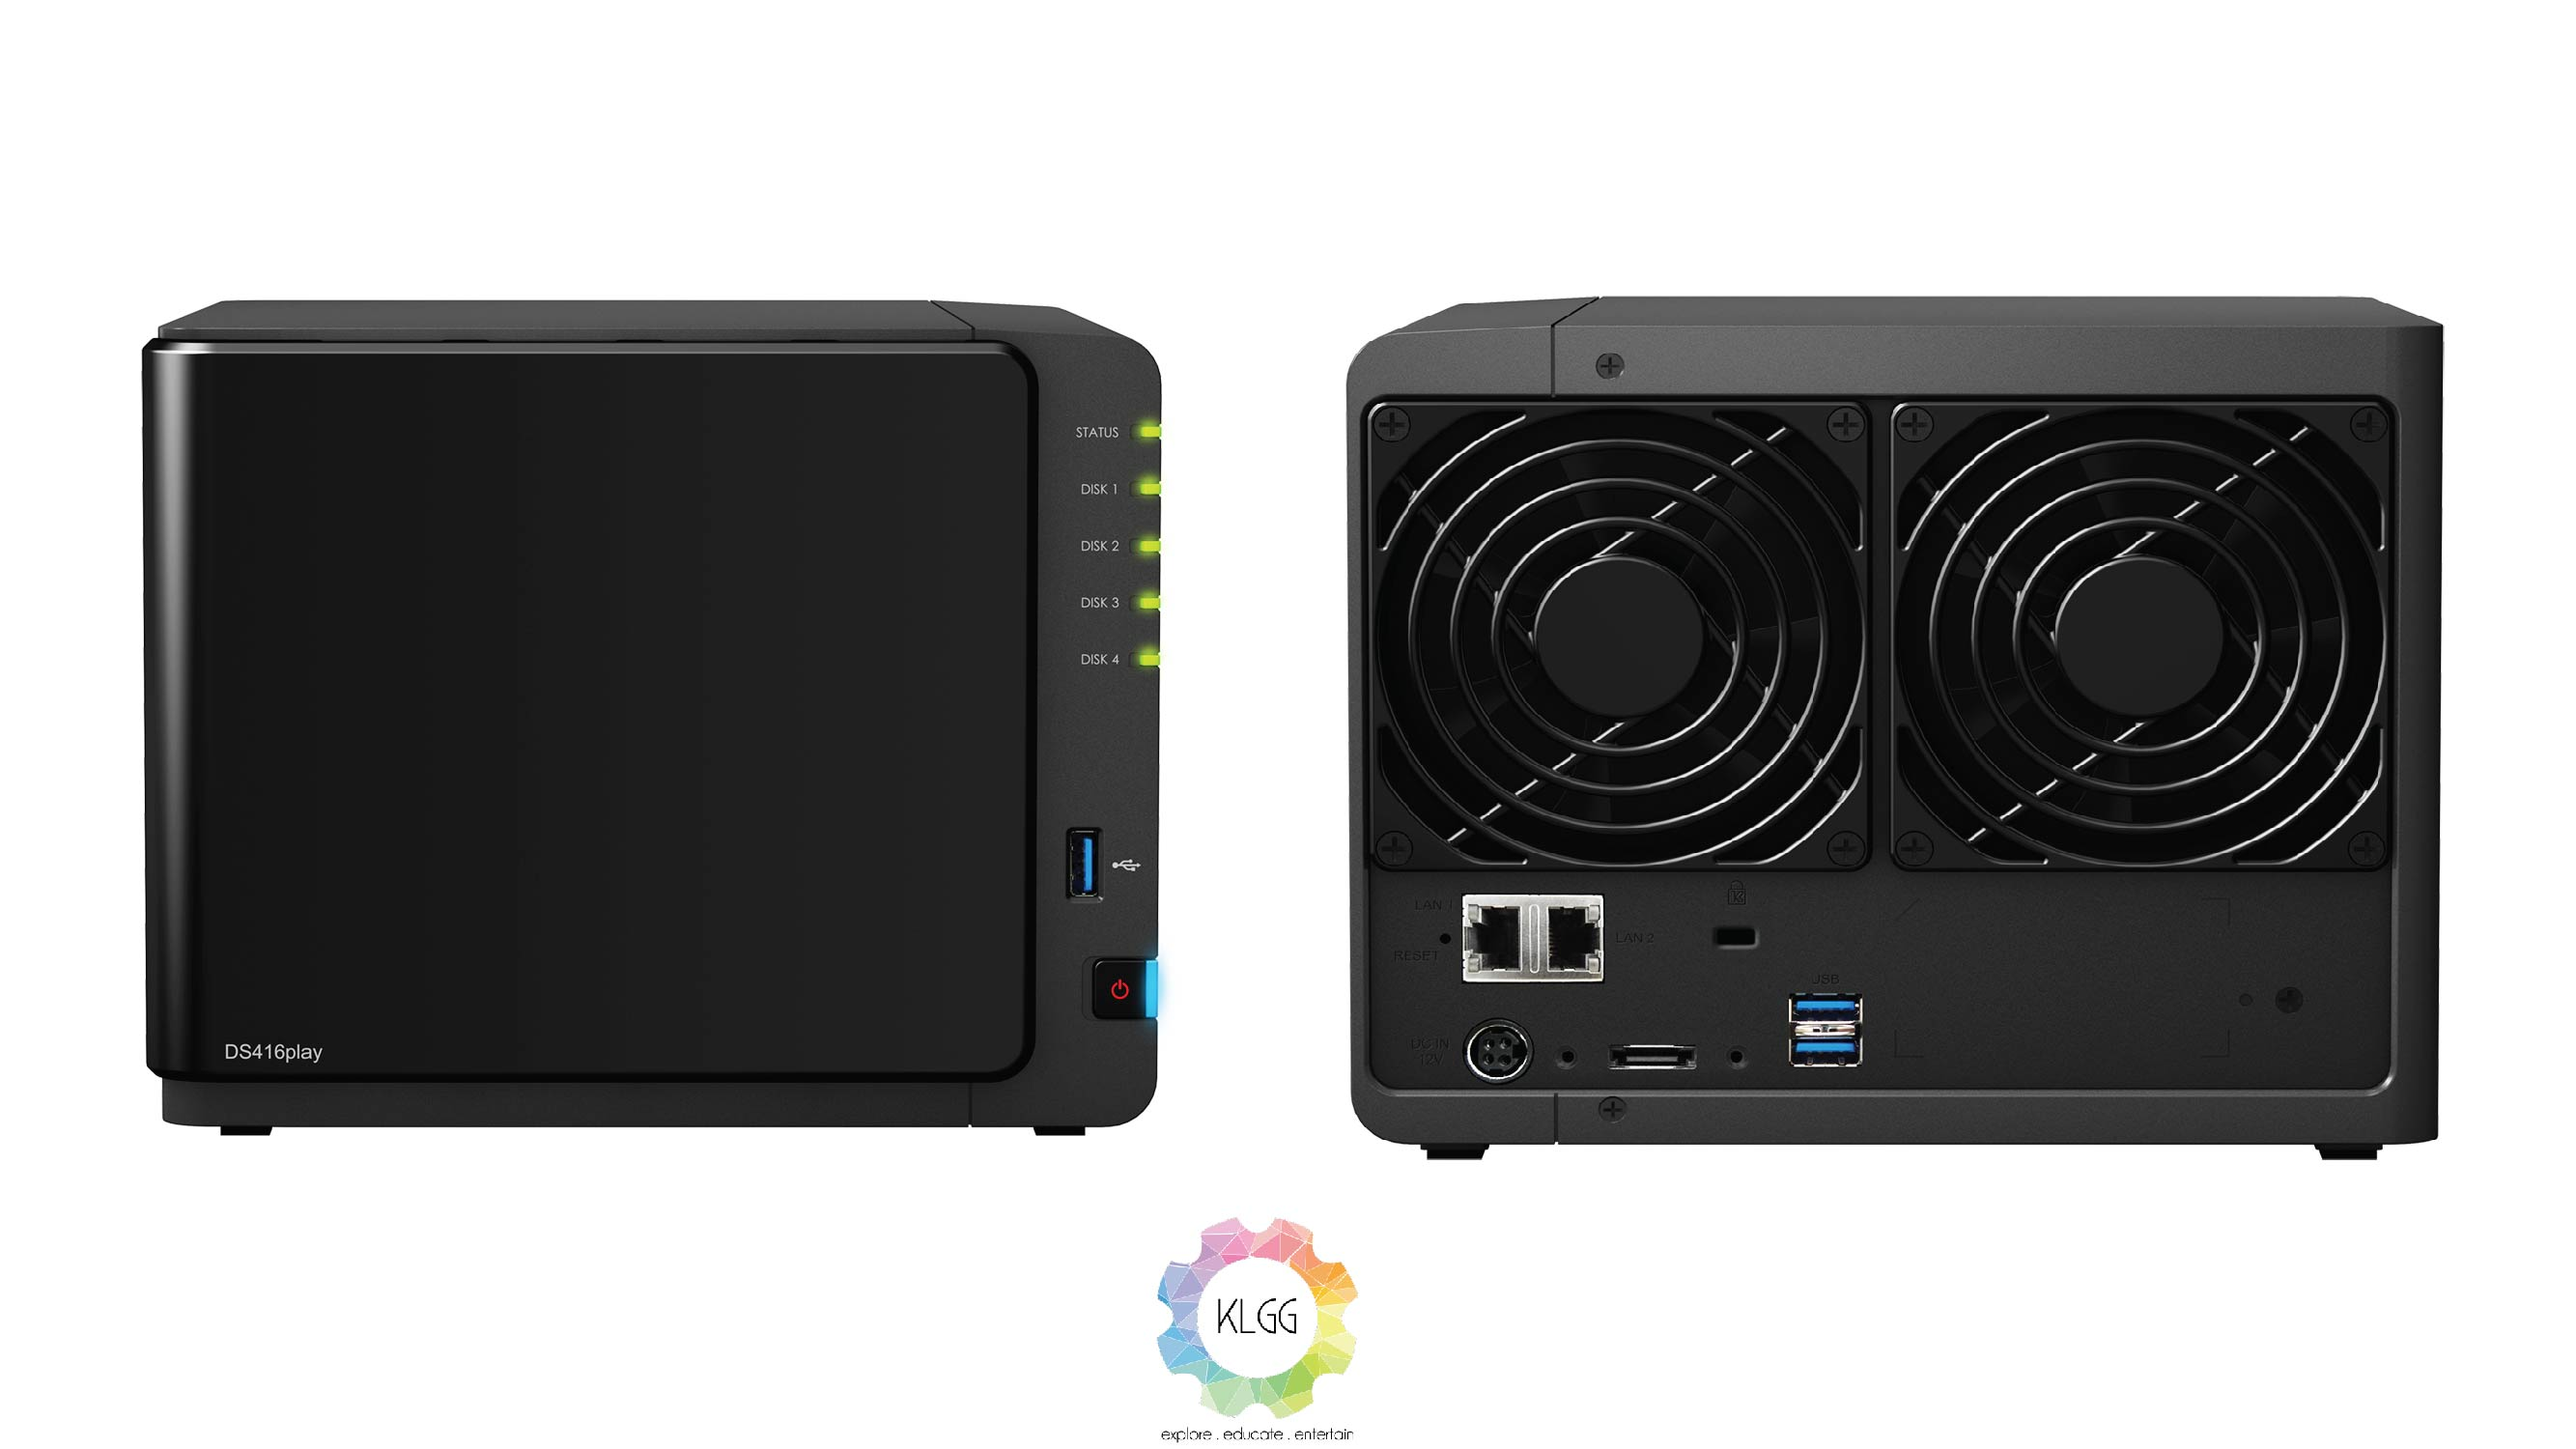 synology ds416play manual